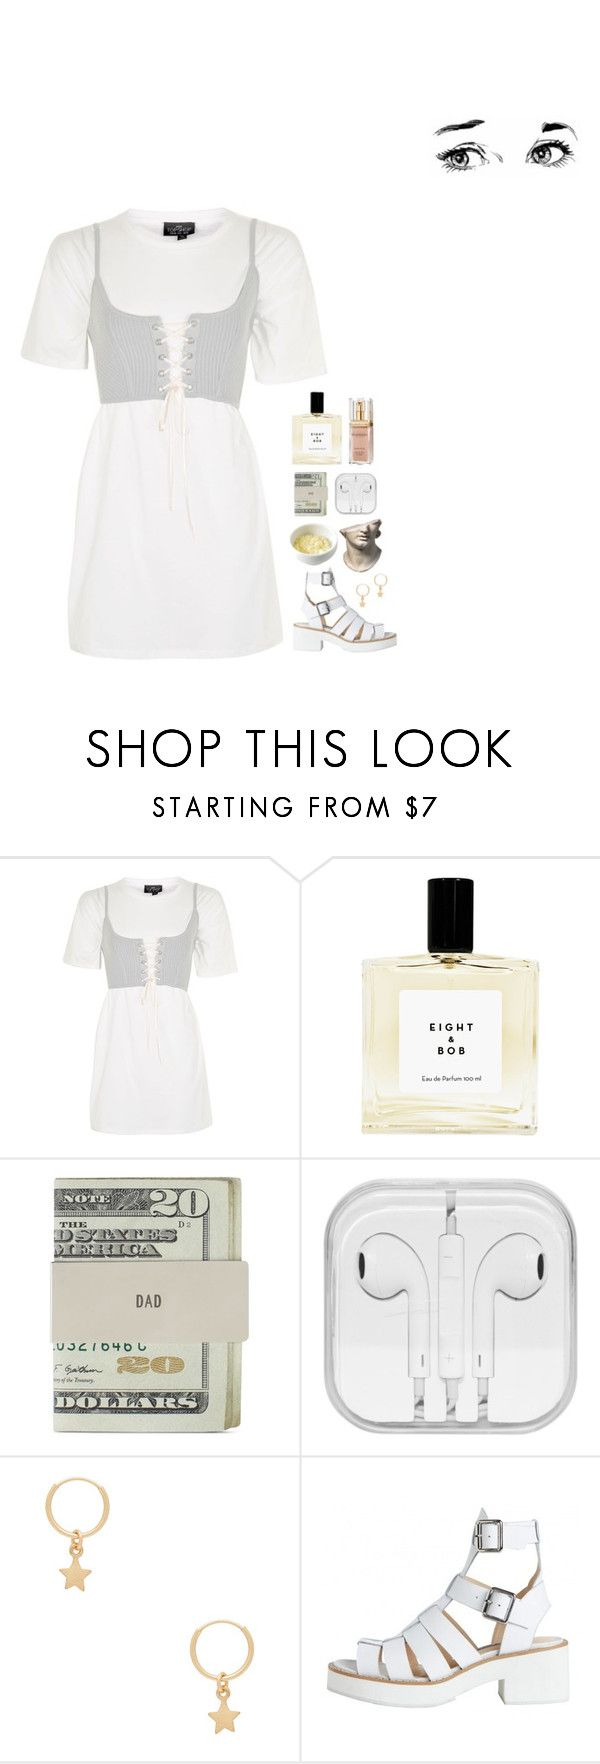 """""""dont get mad its just the factuals"""" by kayleeinfinity ❤ liked on Polyvore featuring Topshop, Jack Spade, Amarilo and Elizabeth Arden"""